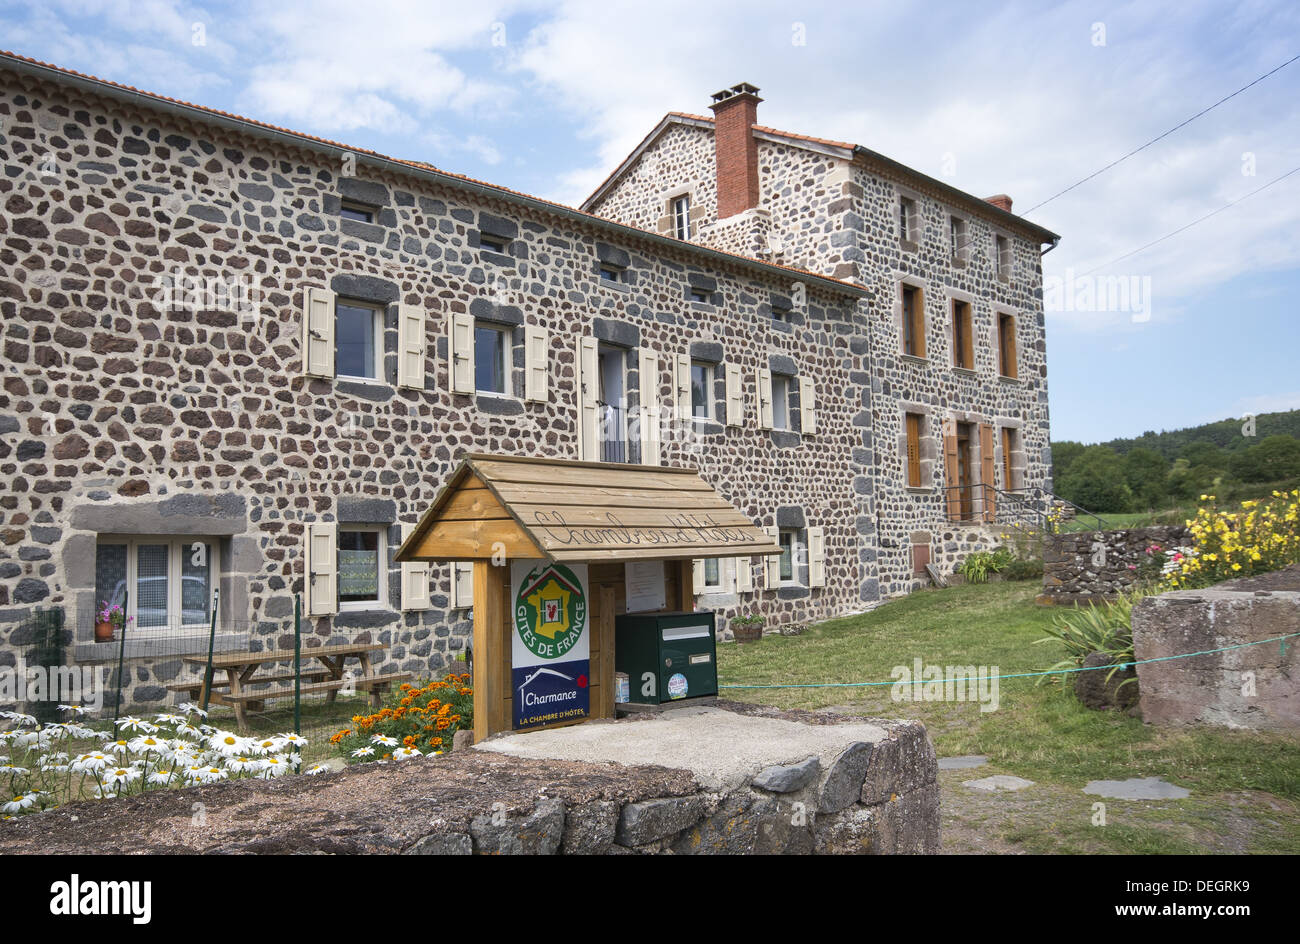 A gite in the picturesque village of Le Chier on the GR65 route, The way of St James, France - Stock Image